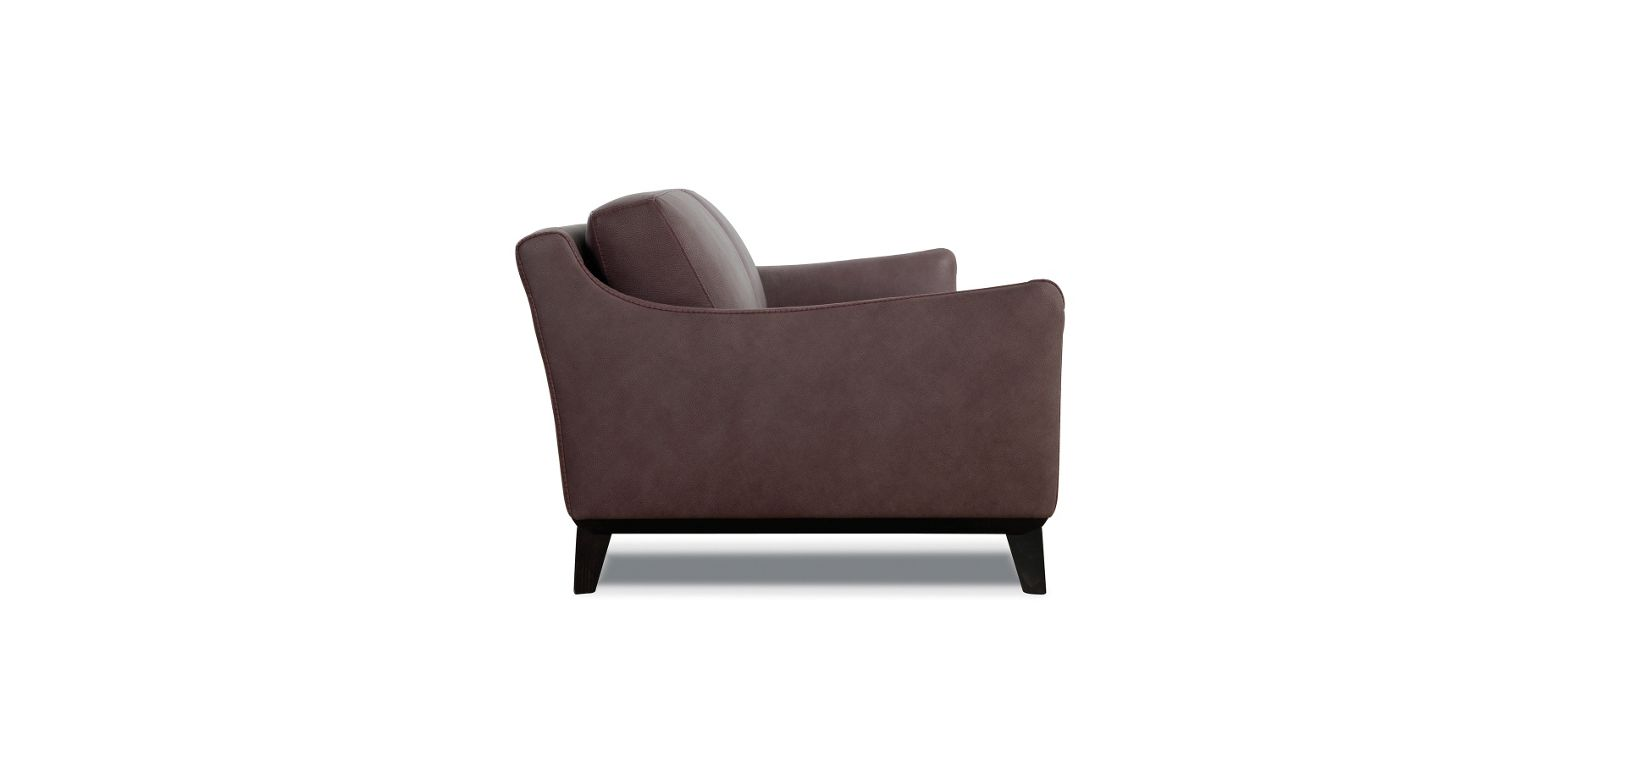 brisbane large 3 seat sofa nouveaux classiques collection roche bobois. Black Bedroom Furniture Sets. Home Design Ideas